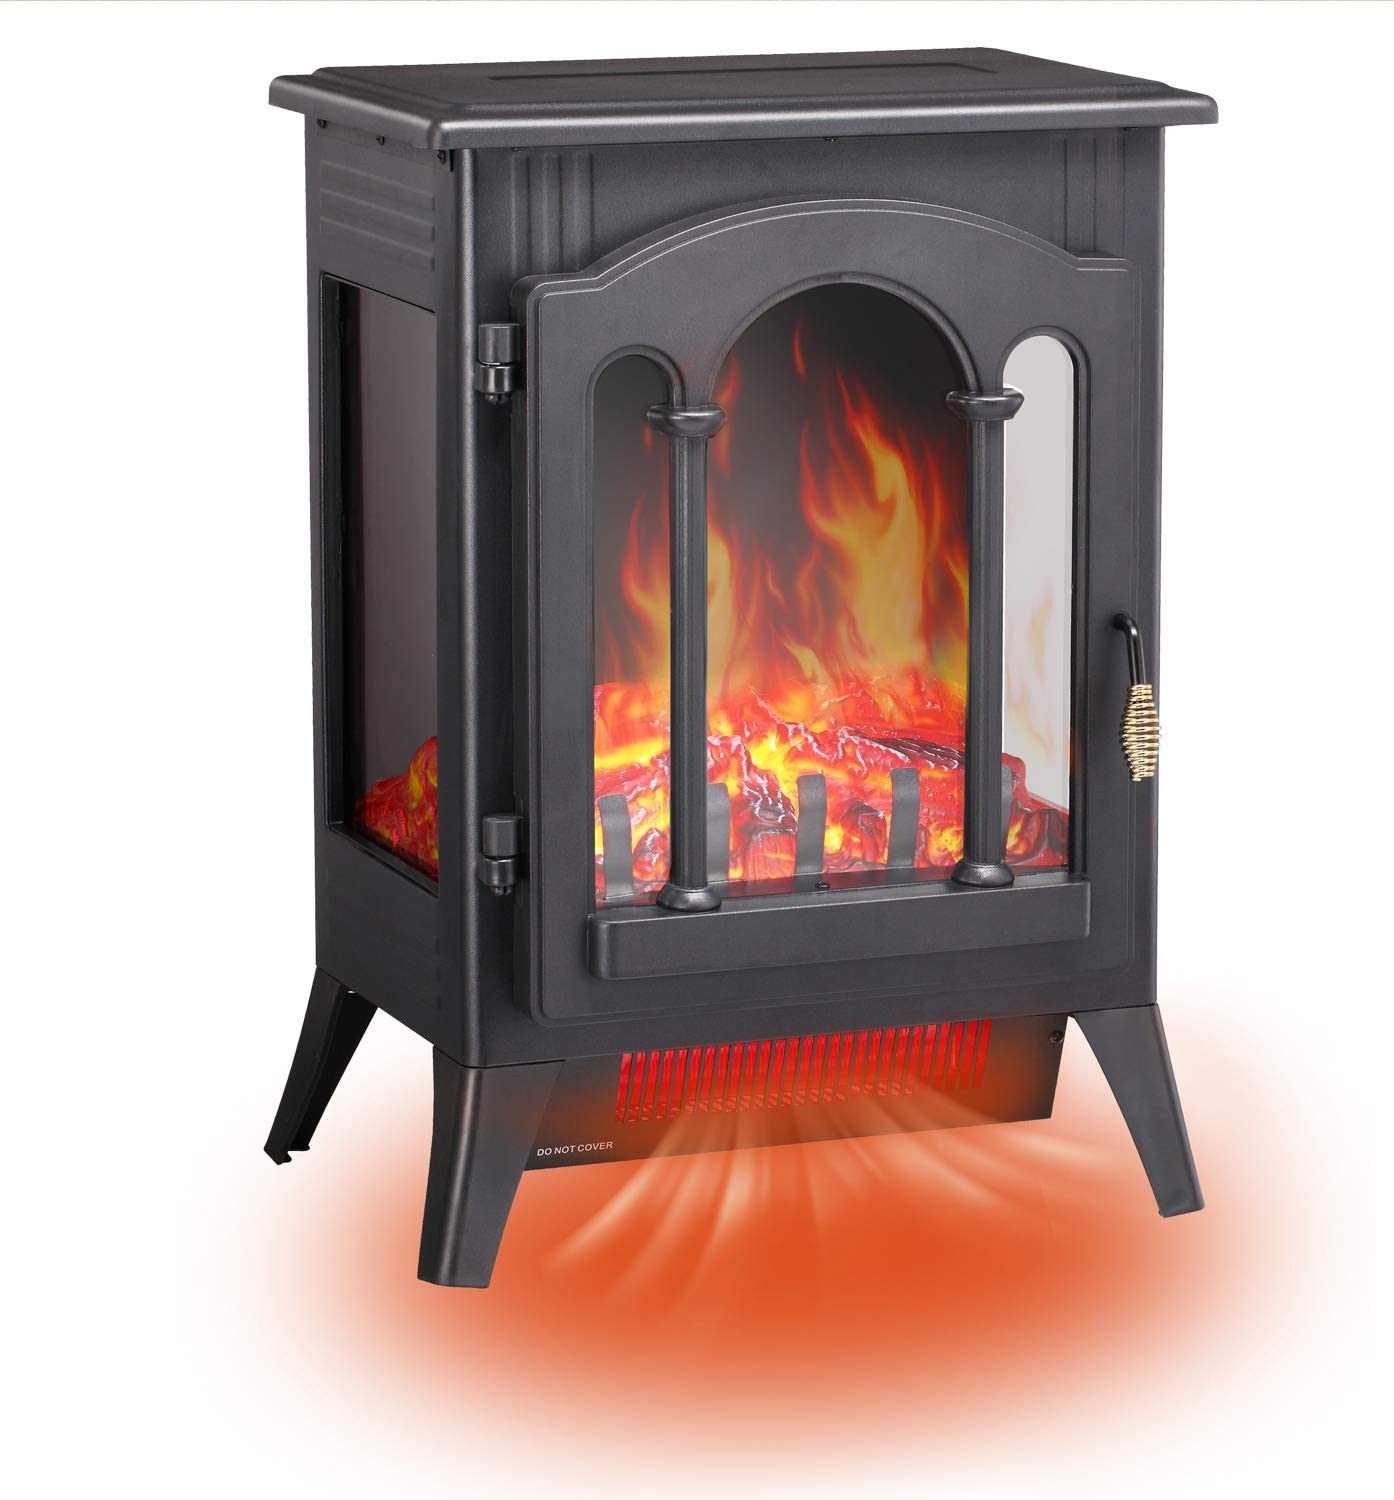 """RMYHOME Infrared Electric Fireplace Stove, 16.3"""" Freestanding Fireplace Heater with Adjustable Brightness and Heating Mode, Realistic Flame Effects, Overheating Safety Protection System"""